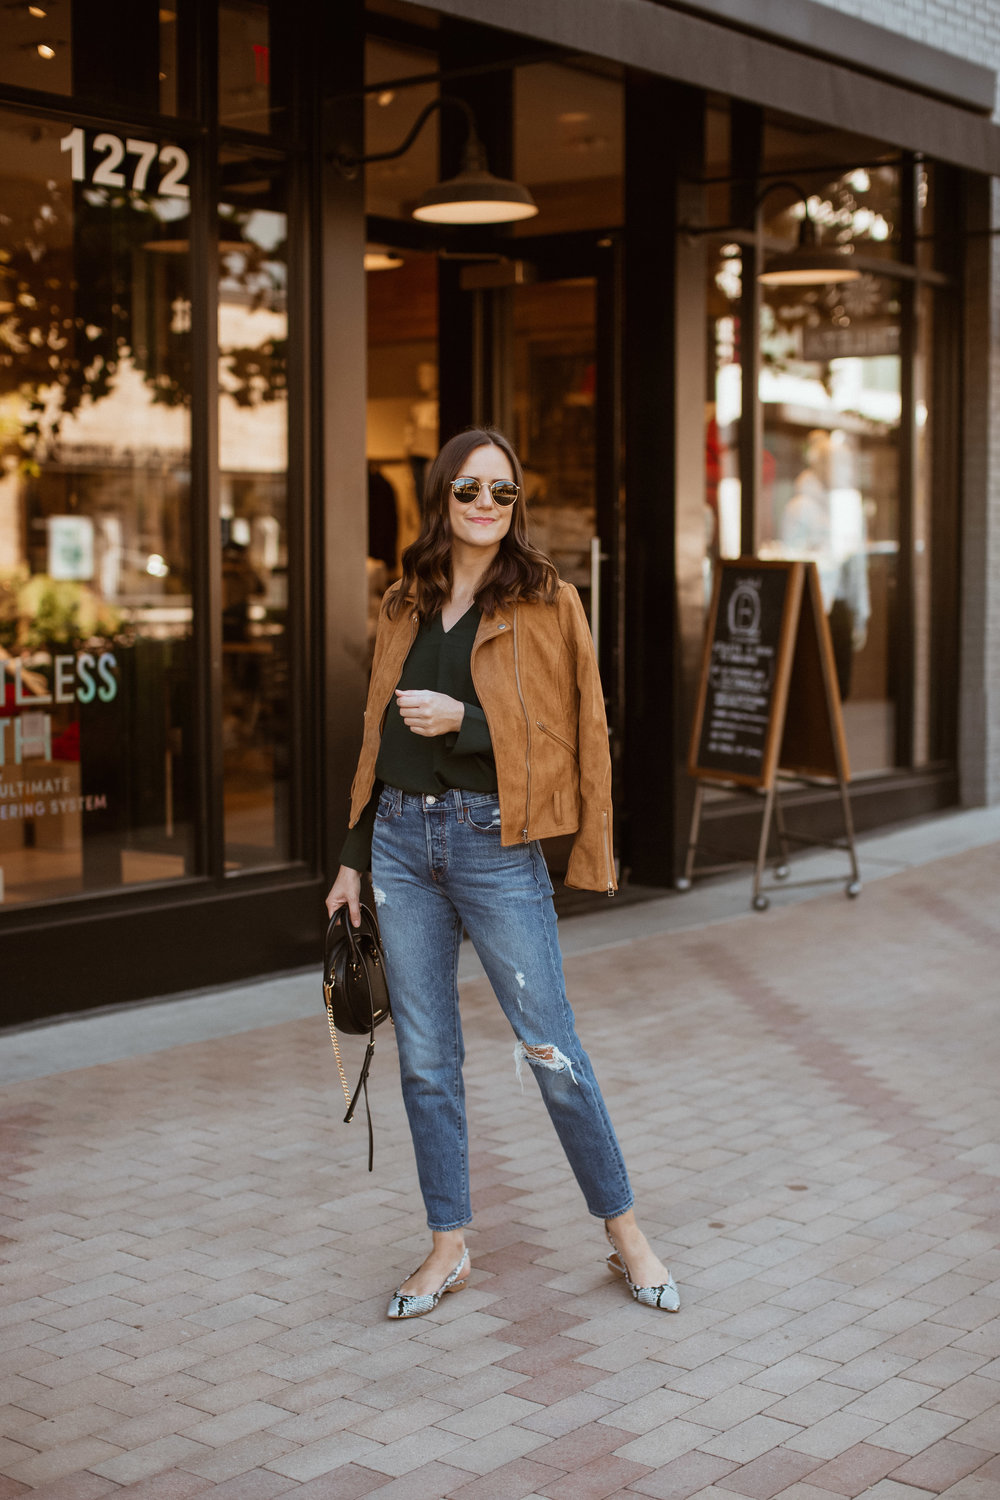 Shop the Look Below.  H&M Blouse  |  Levi's Jeans  | Jacket old - similar  HERE  |  Shopbop Flats  |  Rebecca Minkoff Bag  |  Ray-Ban Sunglasses